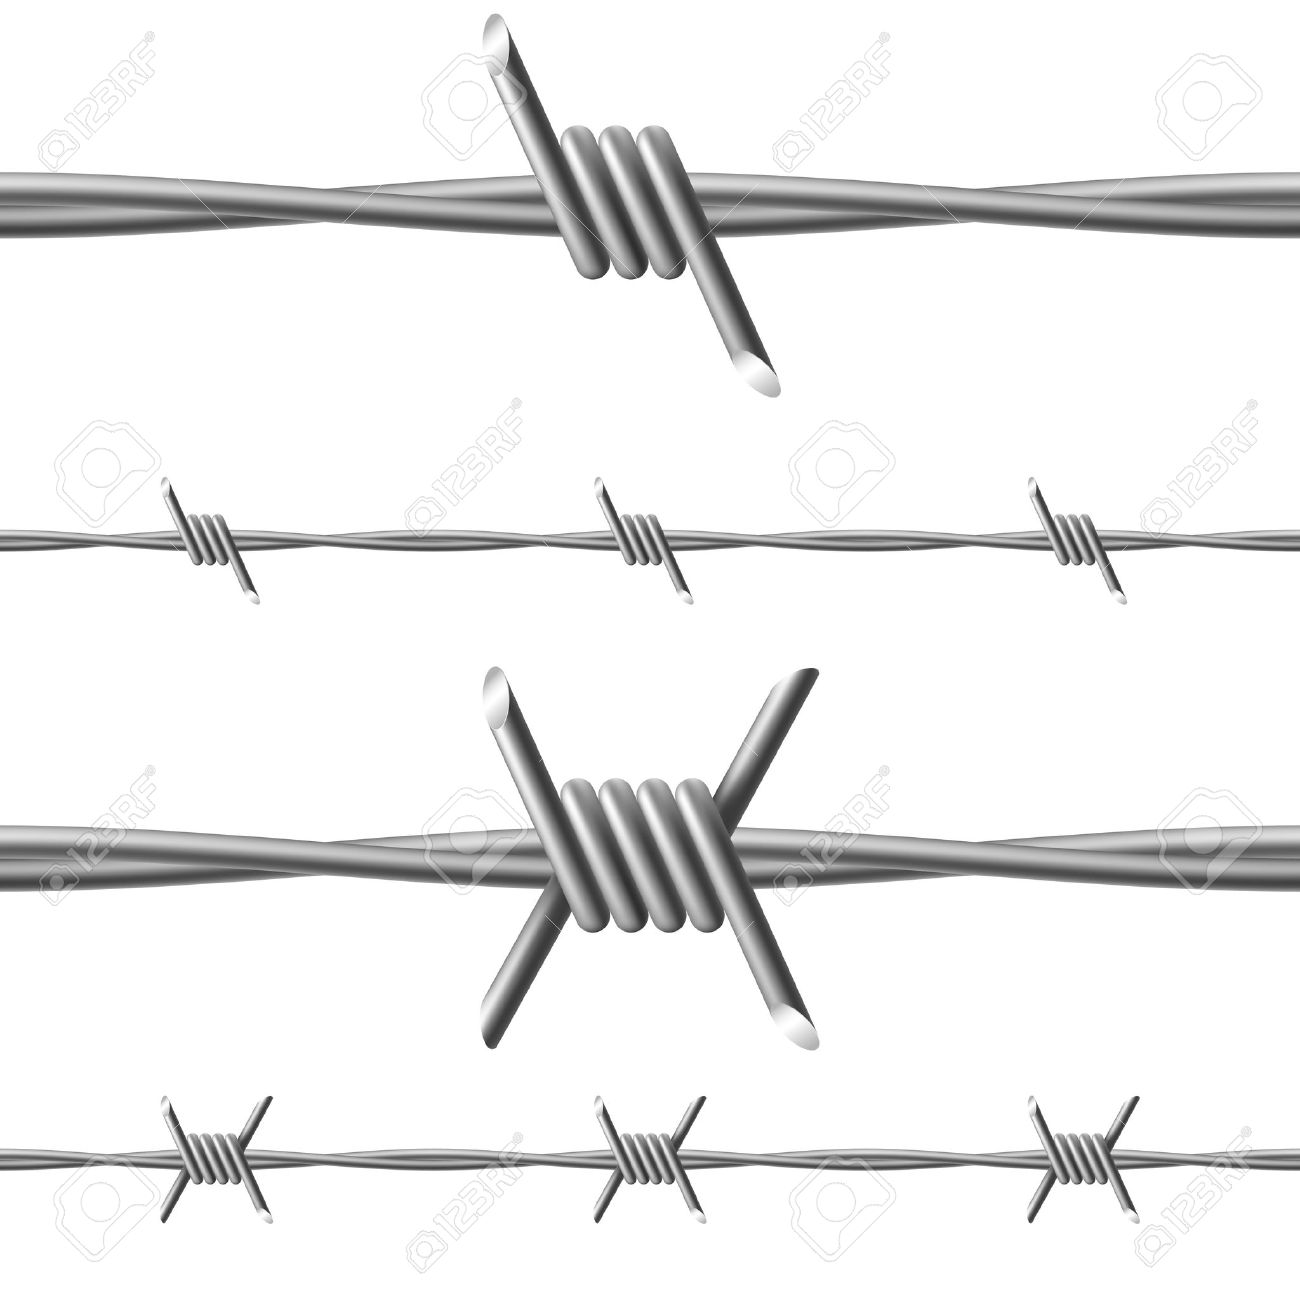 Barbed wire. Illustration on white background for design - 14447600